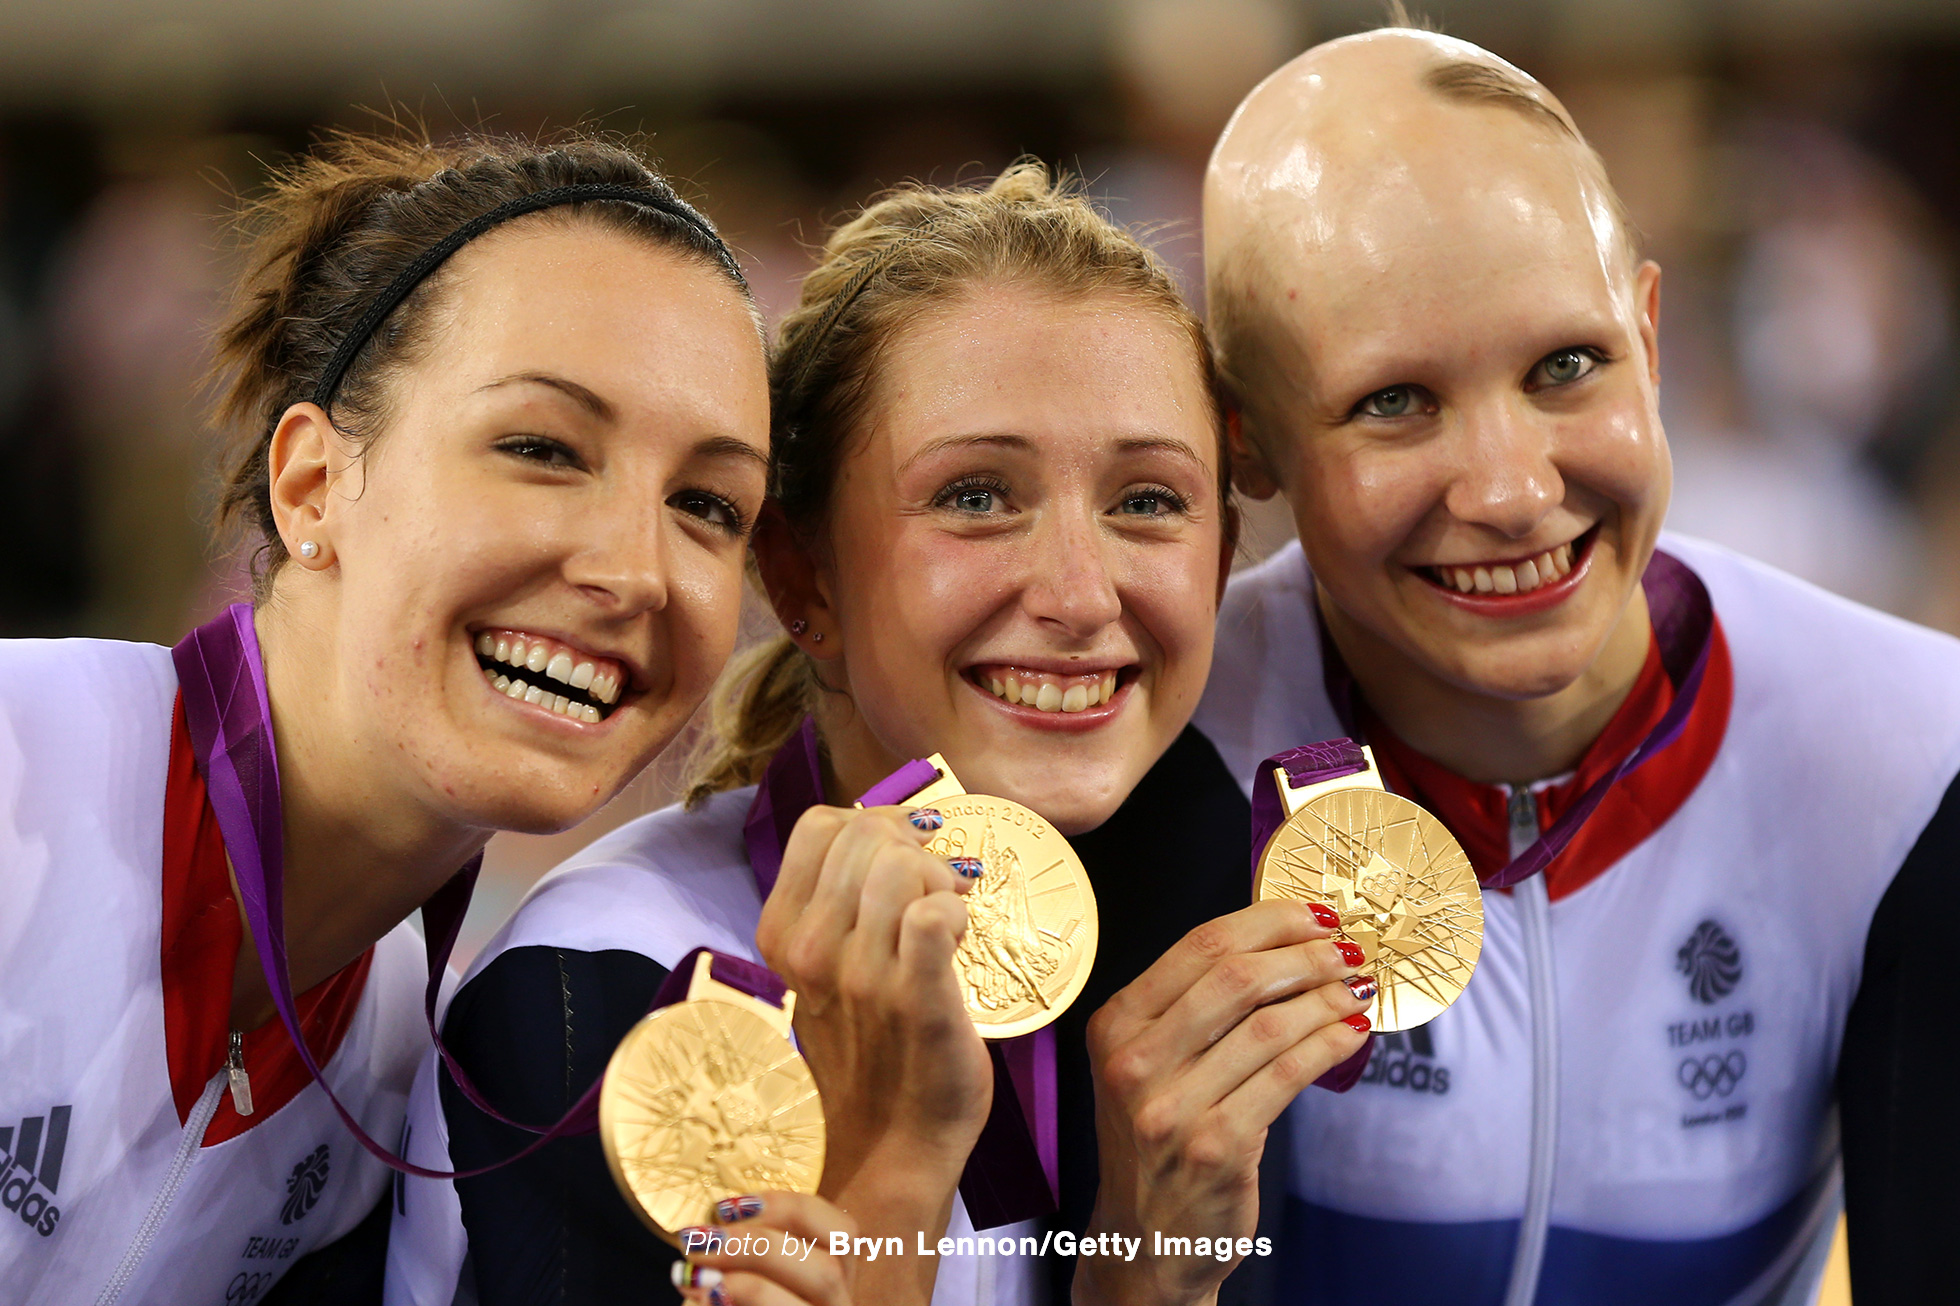 Dani King, Laura Trott, and Joanna Rowsell of Great Britain